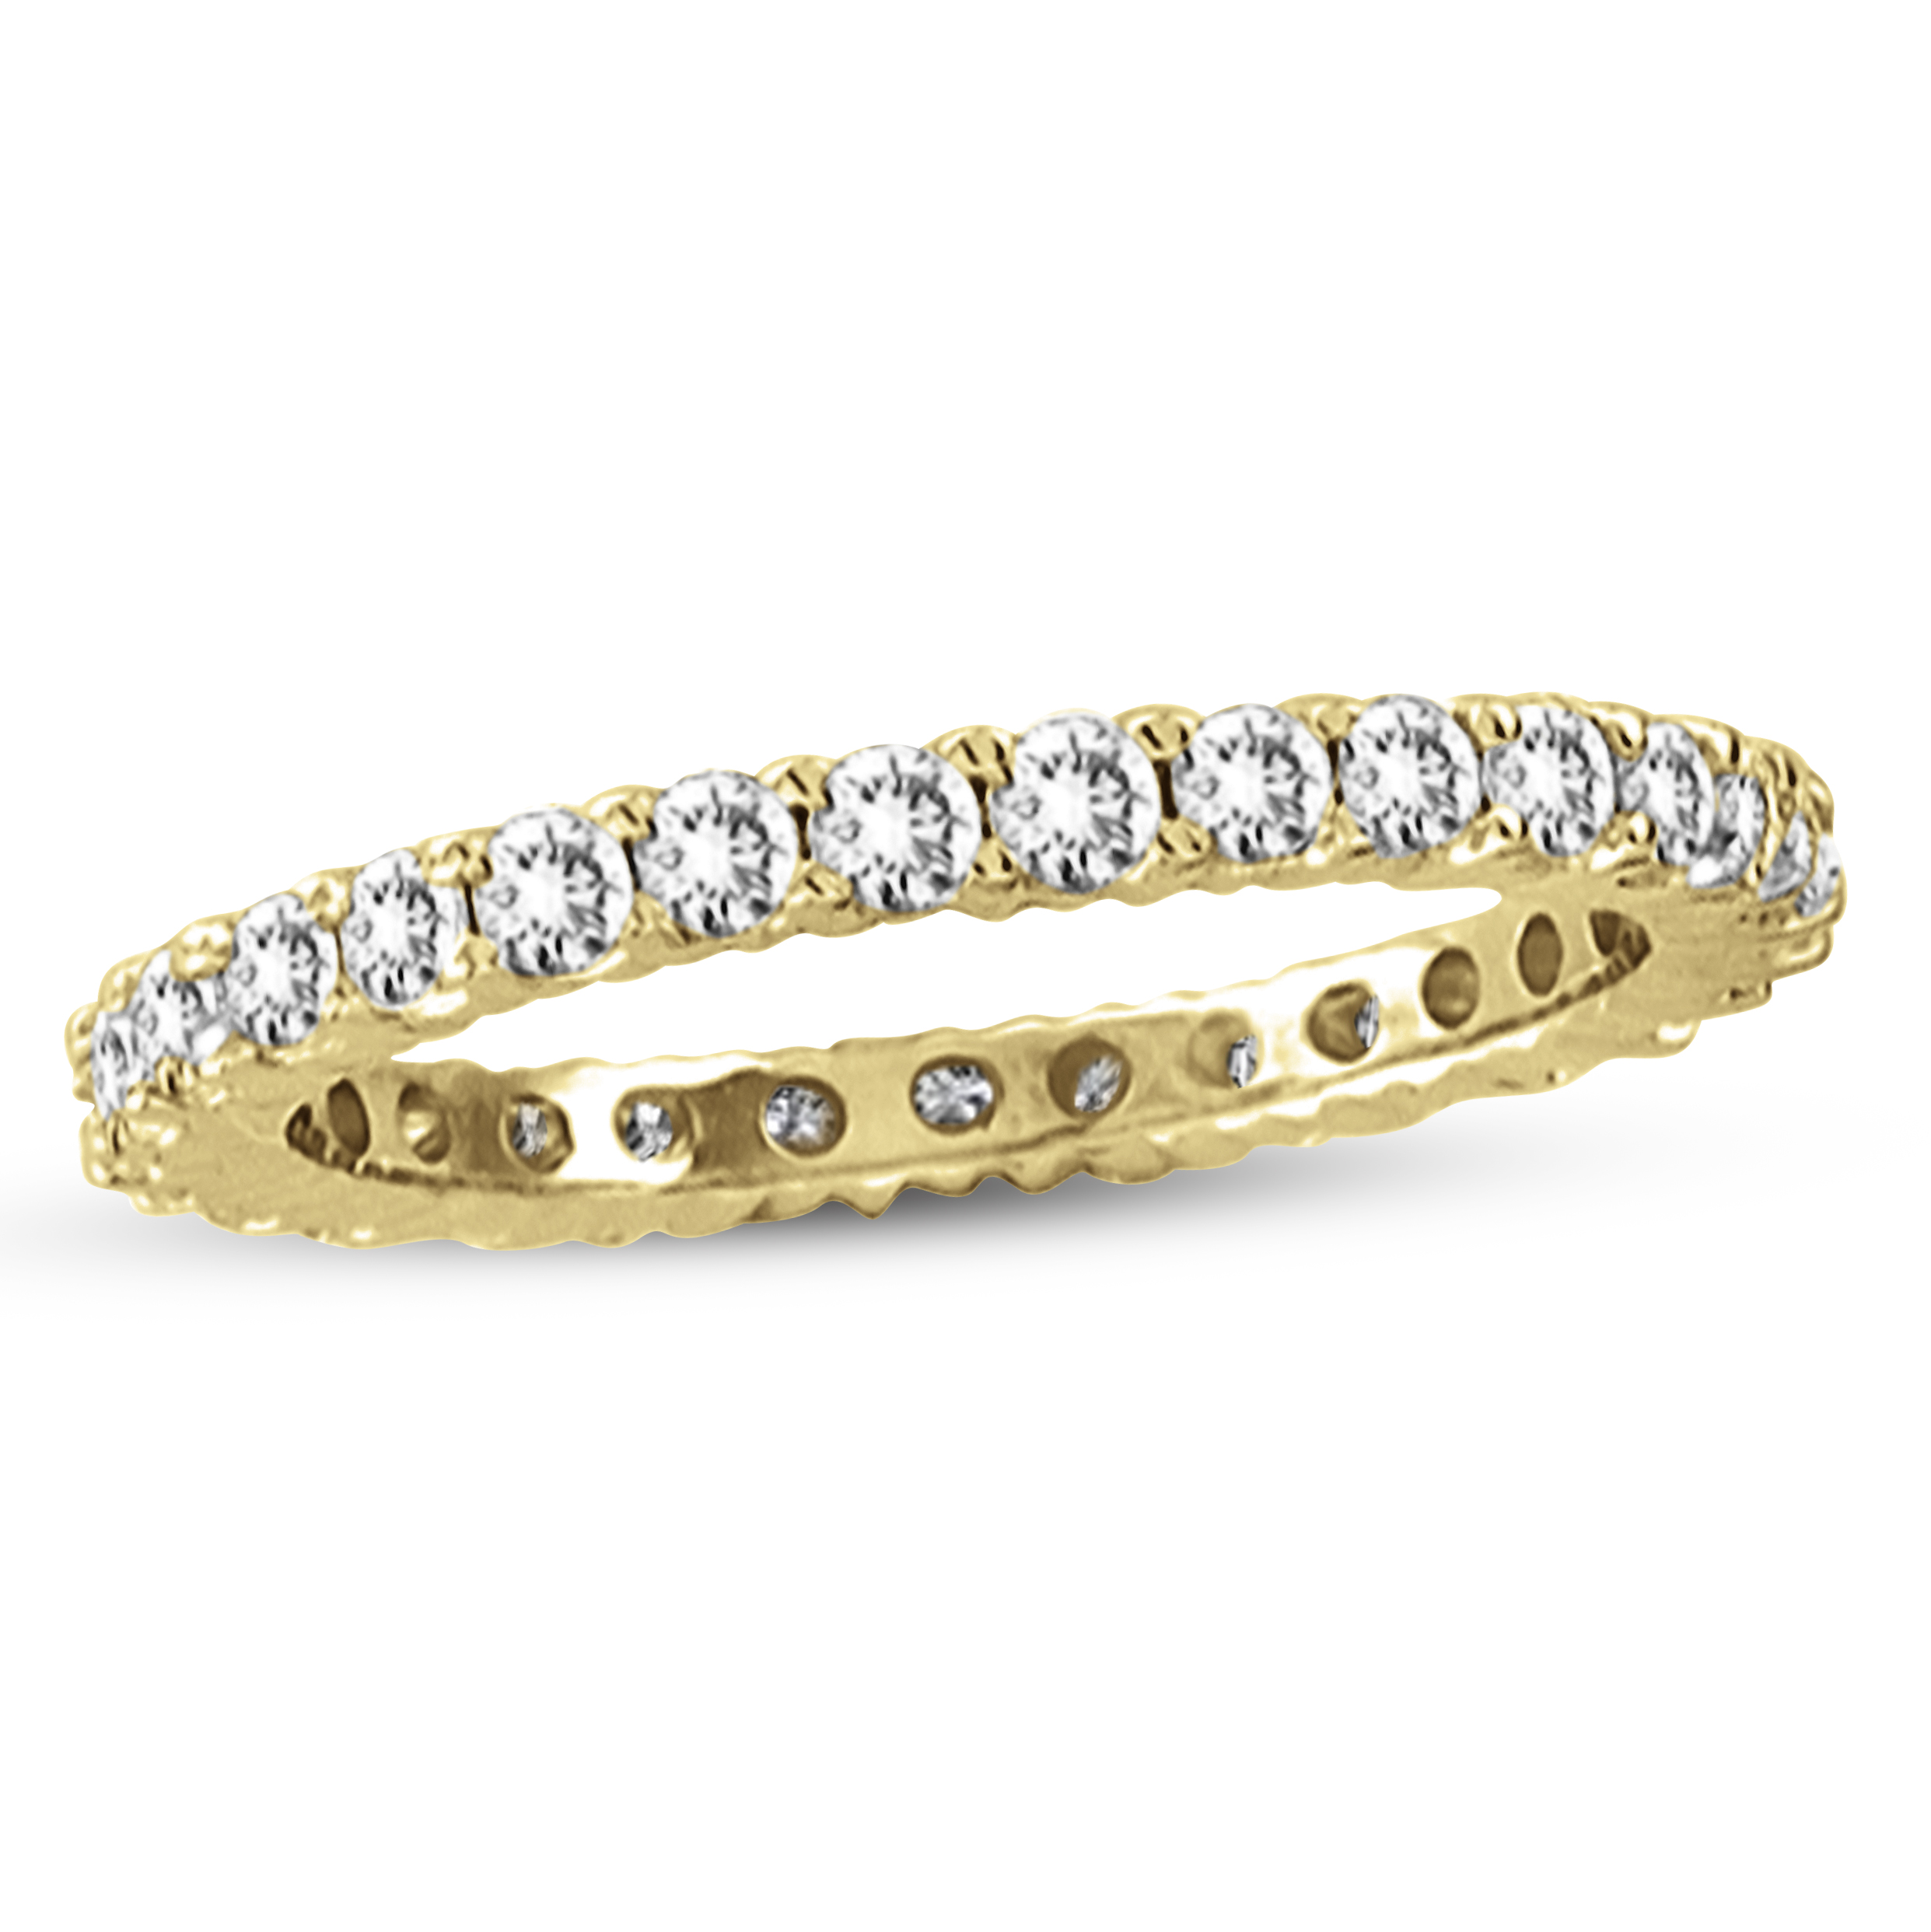 View 0.50ctw Diamond All Around Eternity Wedding Band in 14k Yellow Gold